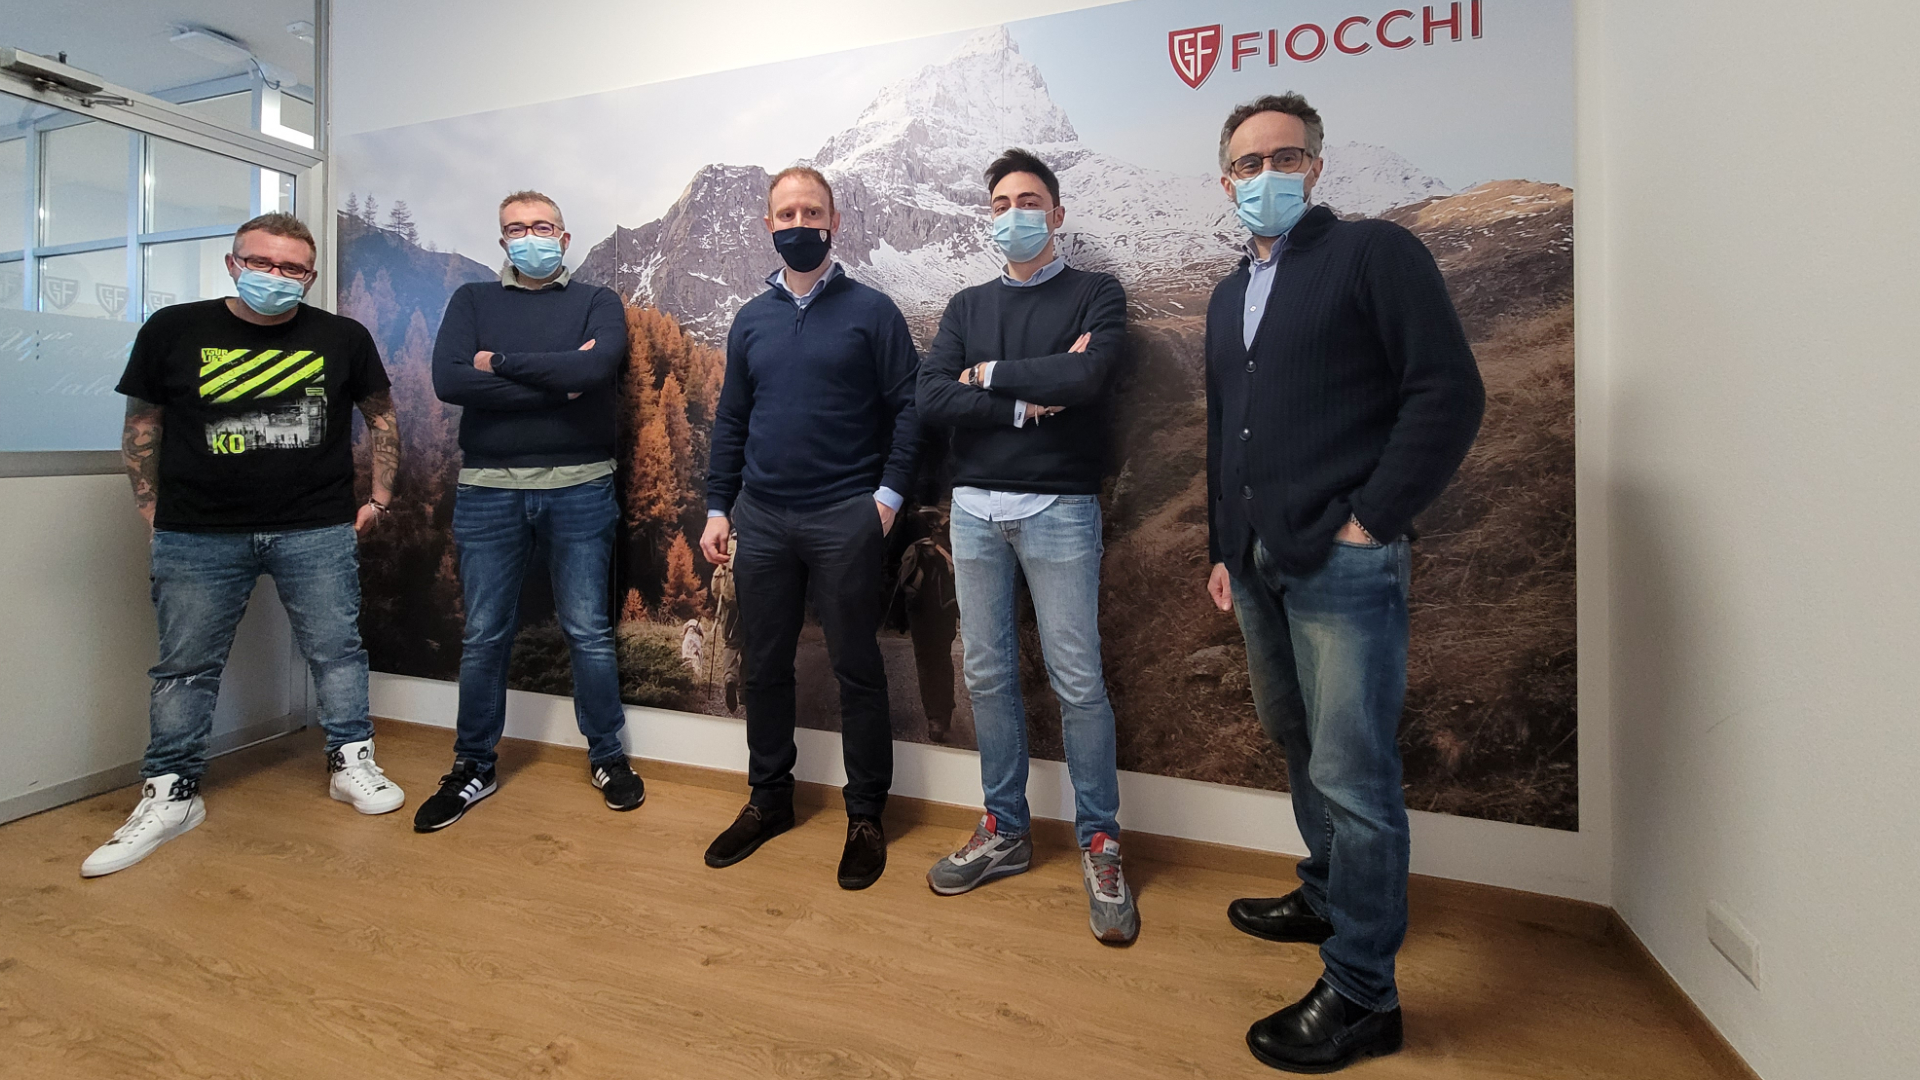 """WELCOME DAYS"": THE INTEGRATION DAYS AIMED AT FIOCCHI'S NEW EMPLOYEES HAVE STARTED"